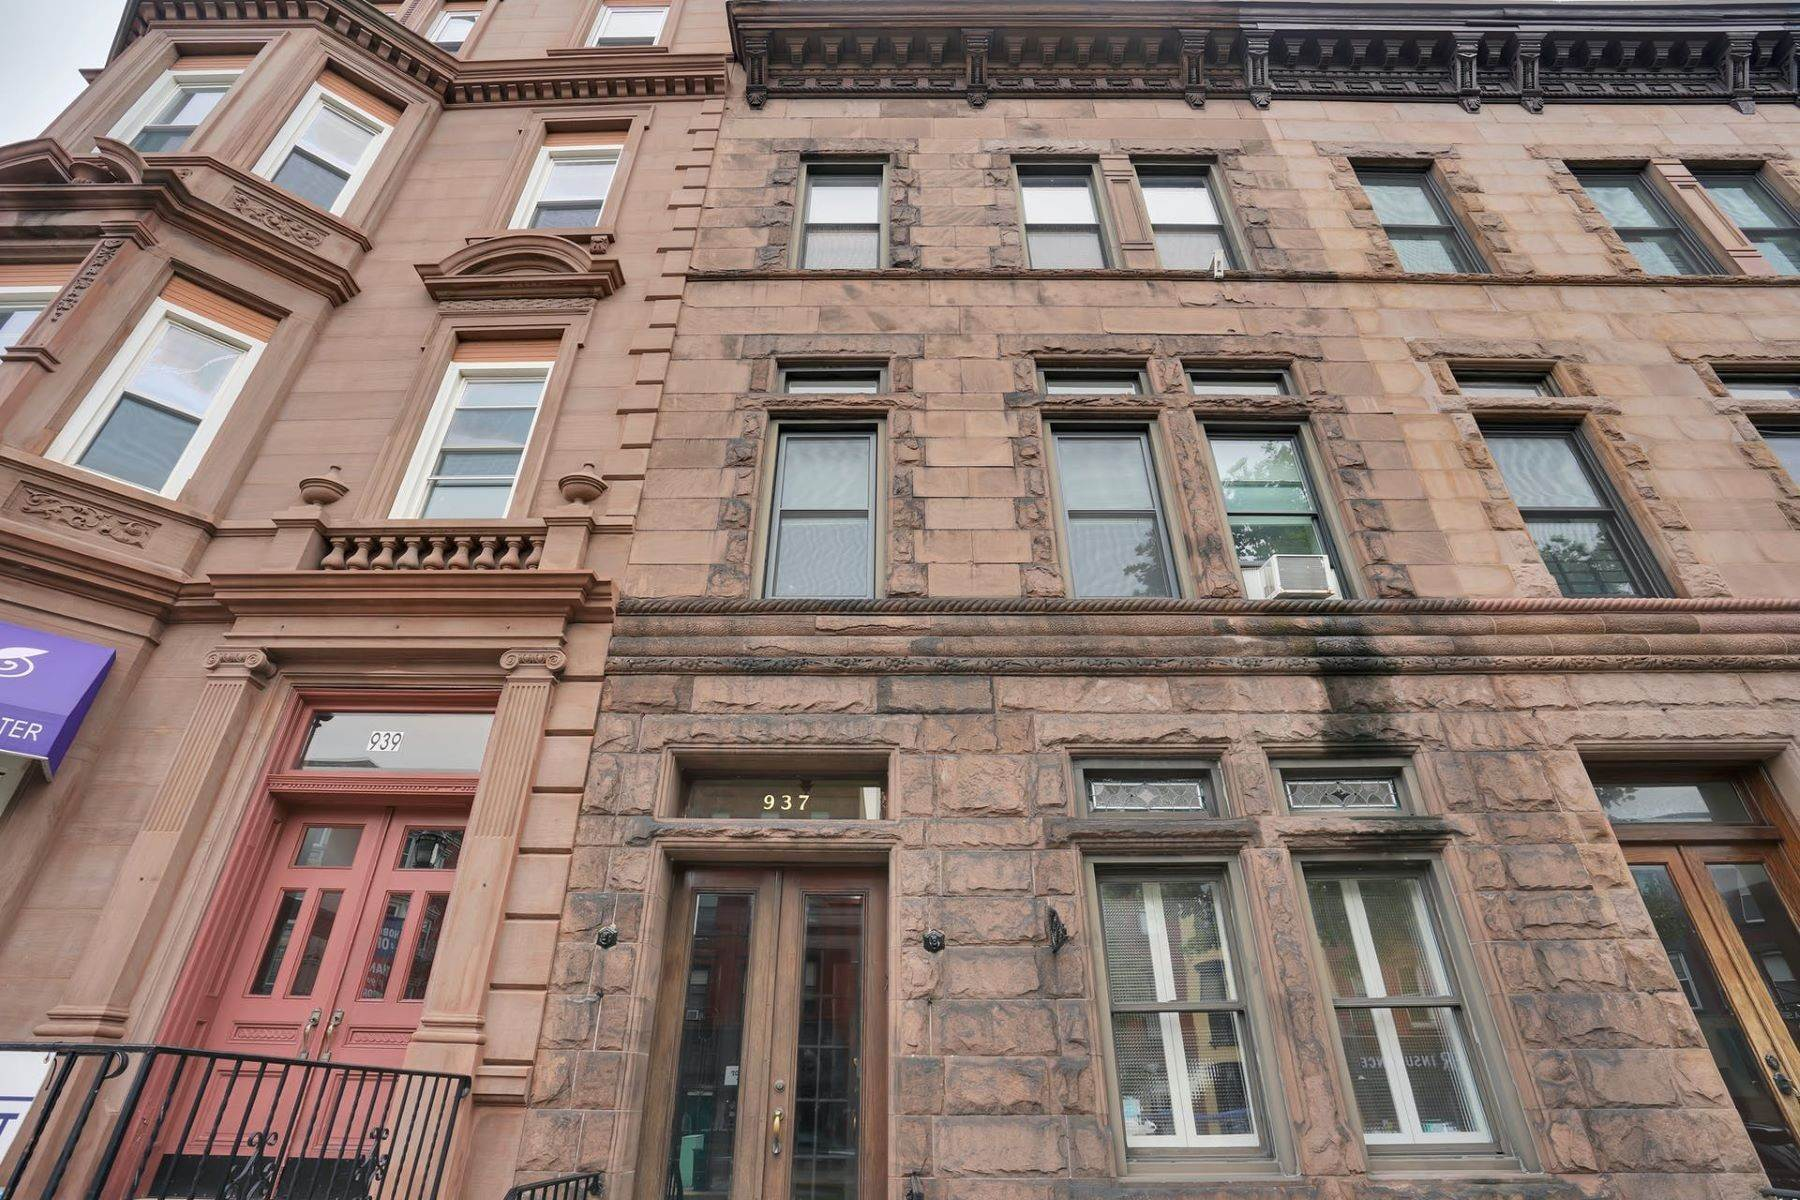 Condominiums for Sale at Classic 2BR Brownstone on Washington St! 937 Washington St. #3 Hoboken, New Jersey 07030 United States